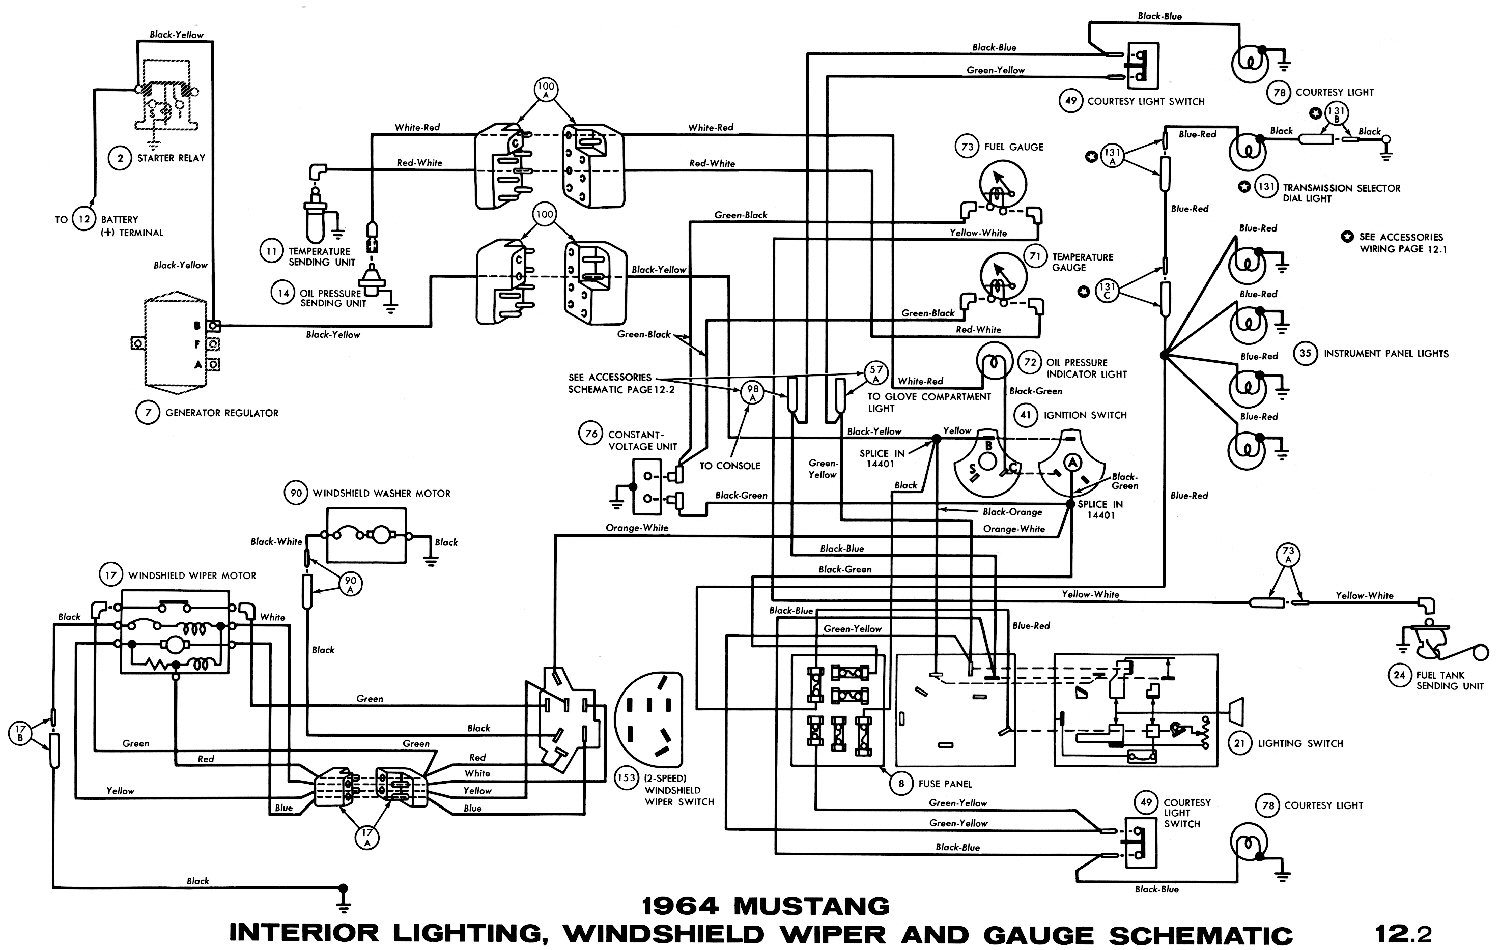 Wiring Diagram For 1966 Ford Mustang Free You 1965 Alternator Diagrams Detailed Rh 11 16 4 Gastspiel Gerhartz De